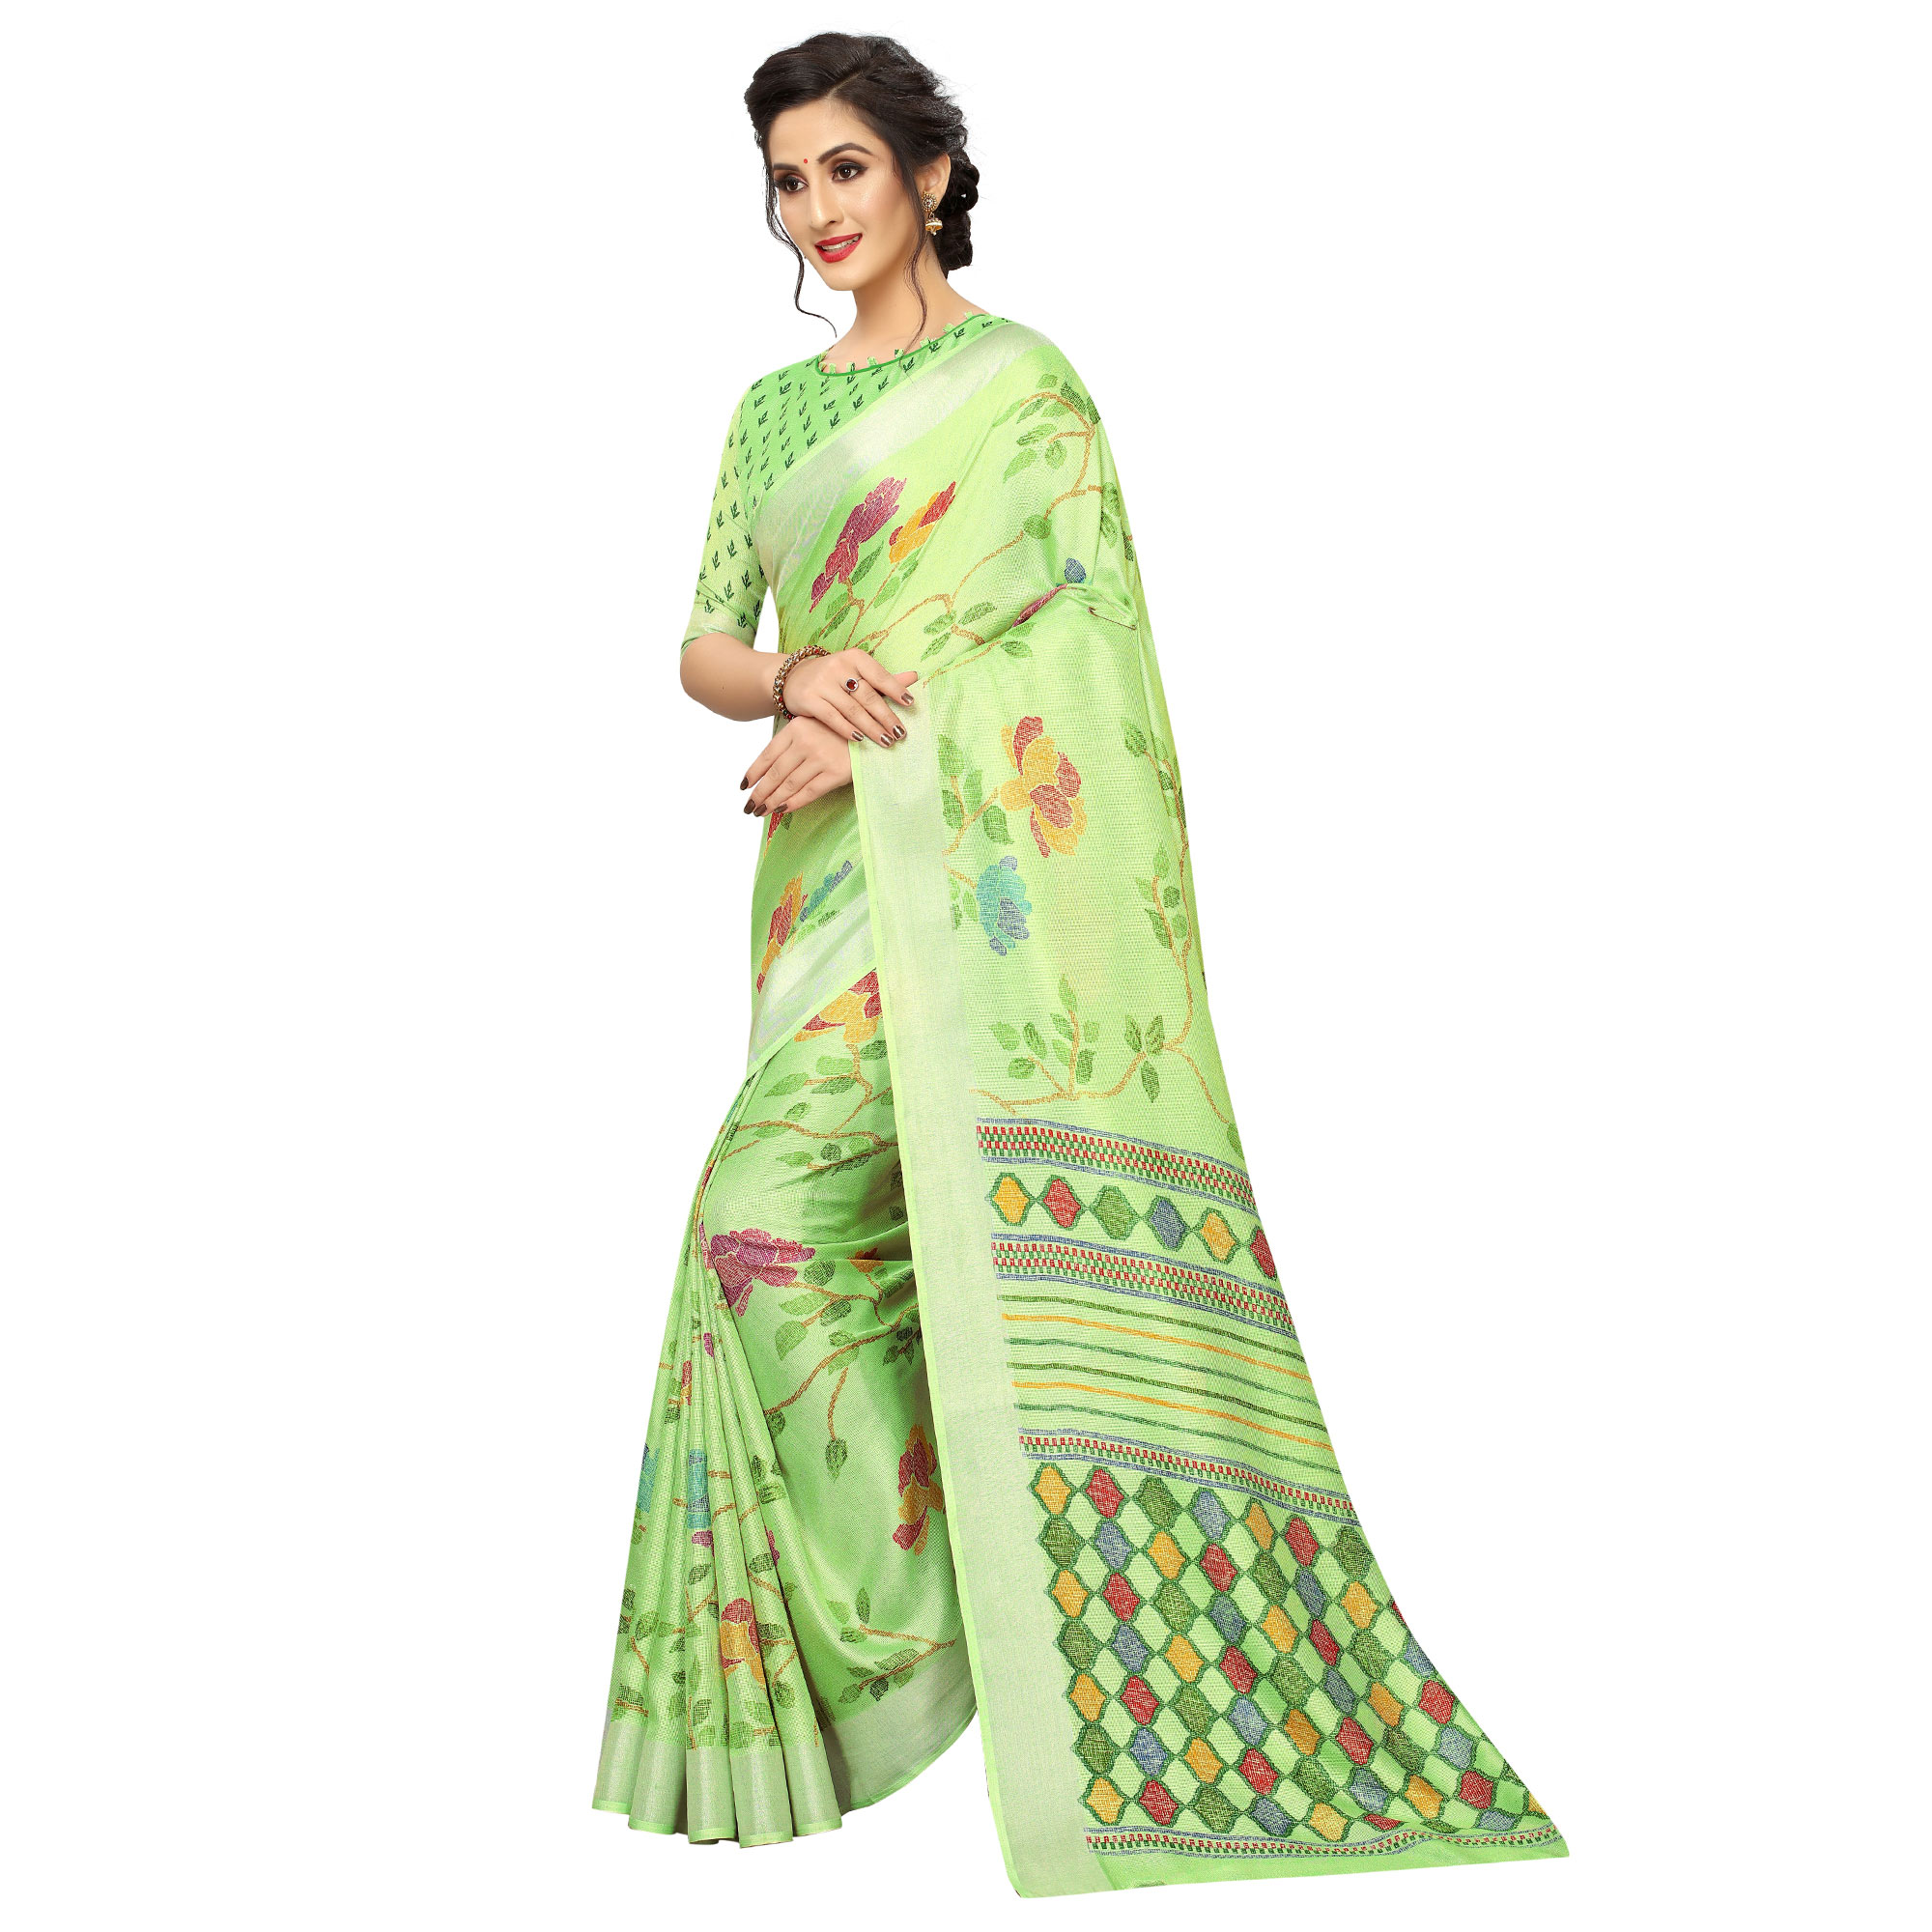 Eye-catching Green Colored Casual Wear Printed Linen Saree